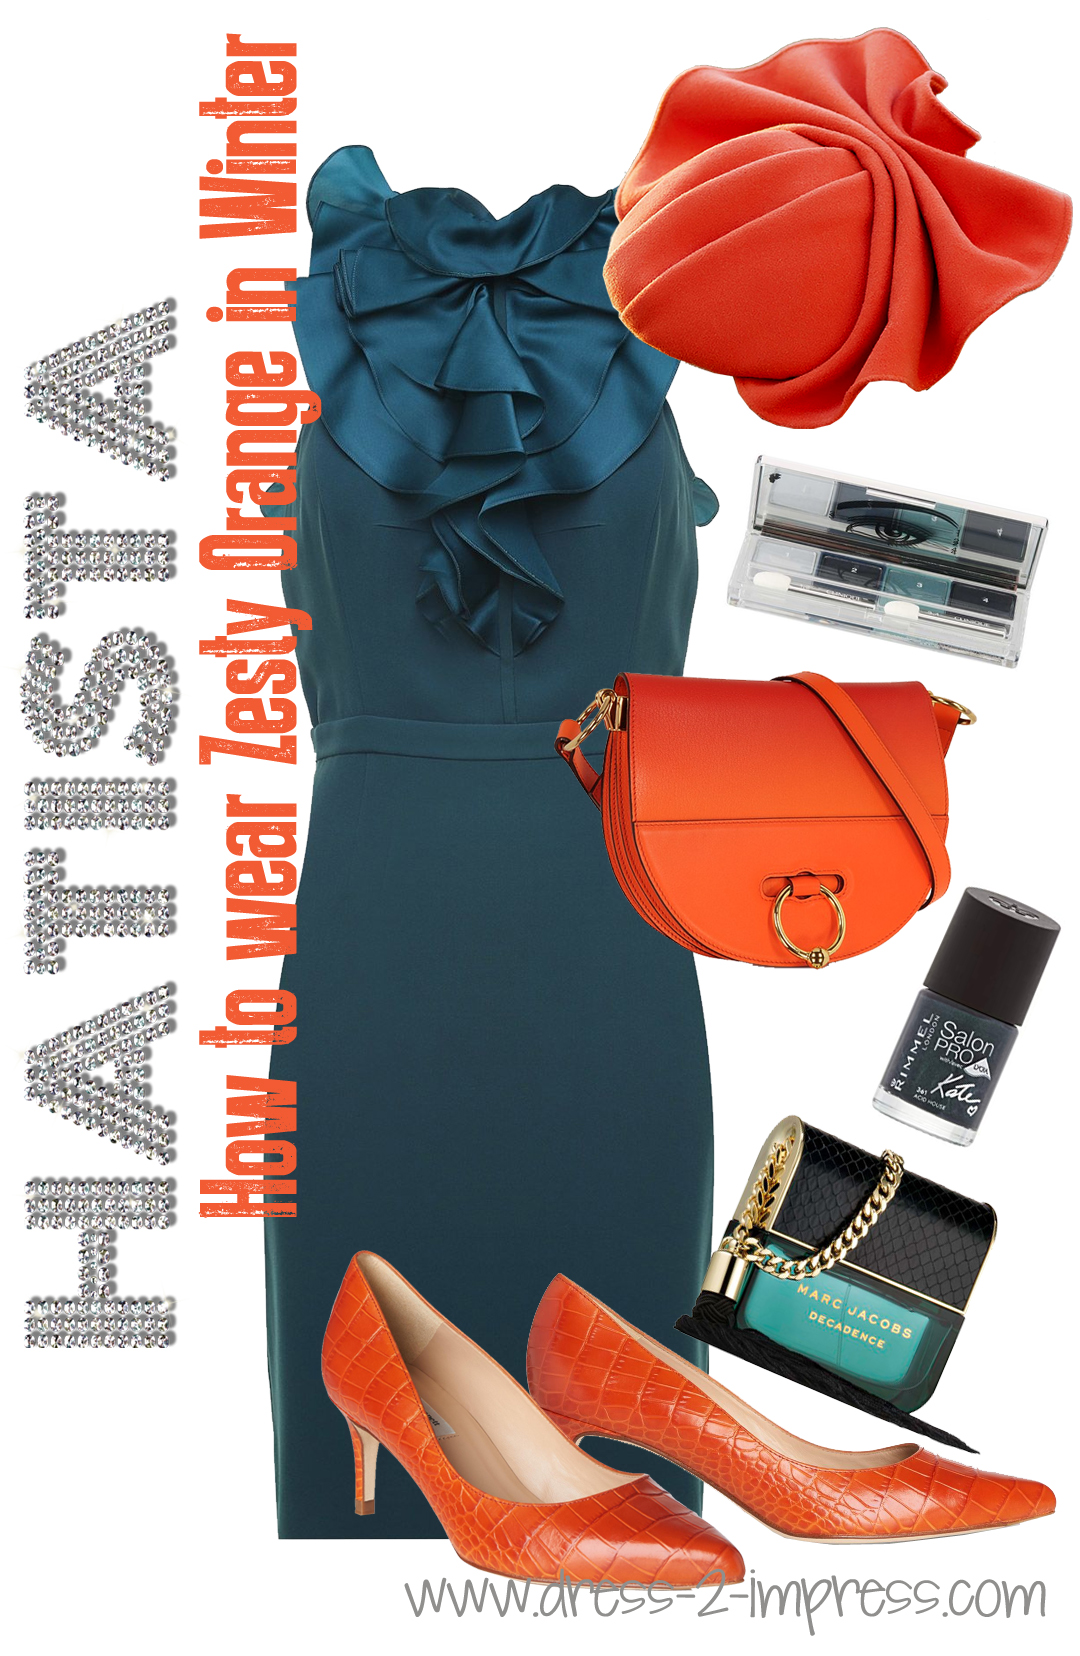 How to Wear Orange, What colours go with Orange. What colors to wear with Teal. Outfits with Teal. Winter wedding guest outfits. What to wear to a winter wedding from THE HATISTA www.dress-2-impress.com #outfitinspiration #outfitideas #wearorange #fashionideas